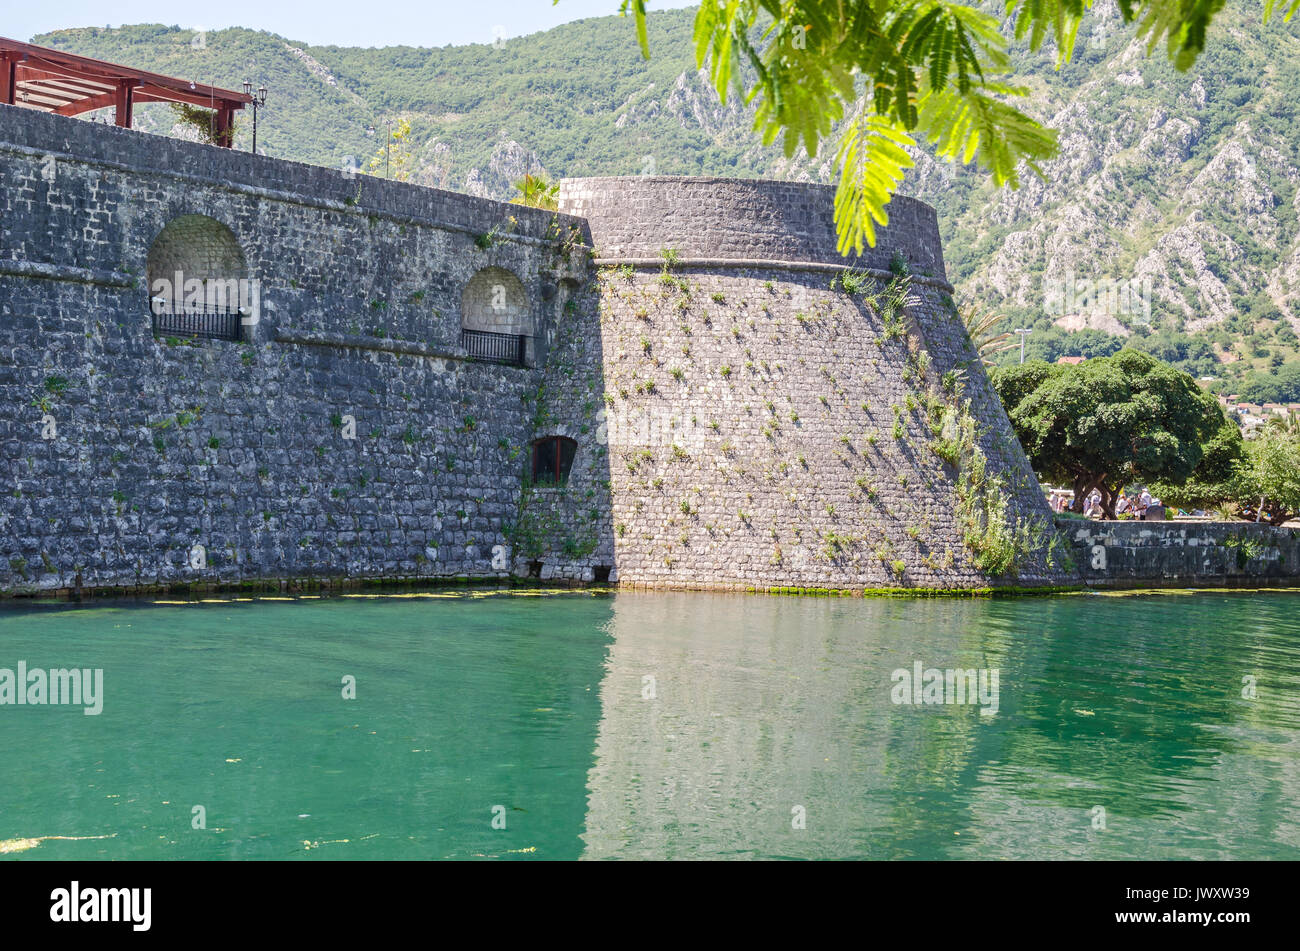 Venetian fortifications of old town of Kotor included in UNESCO's World Heritage Site list as part of Venetian Works of Defence. The West side of the  - Stock Image